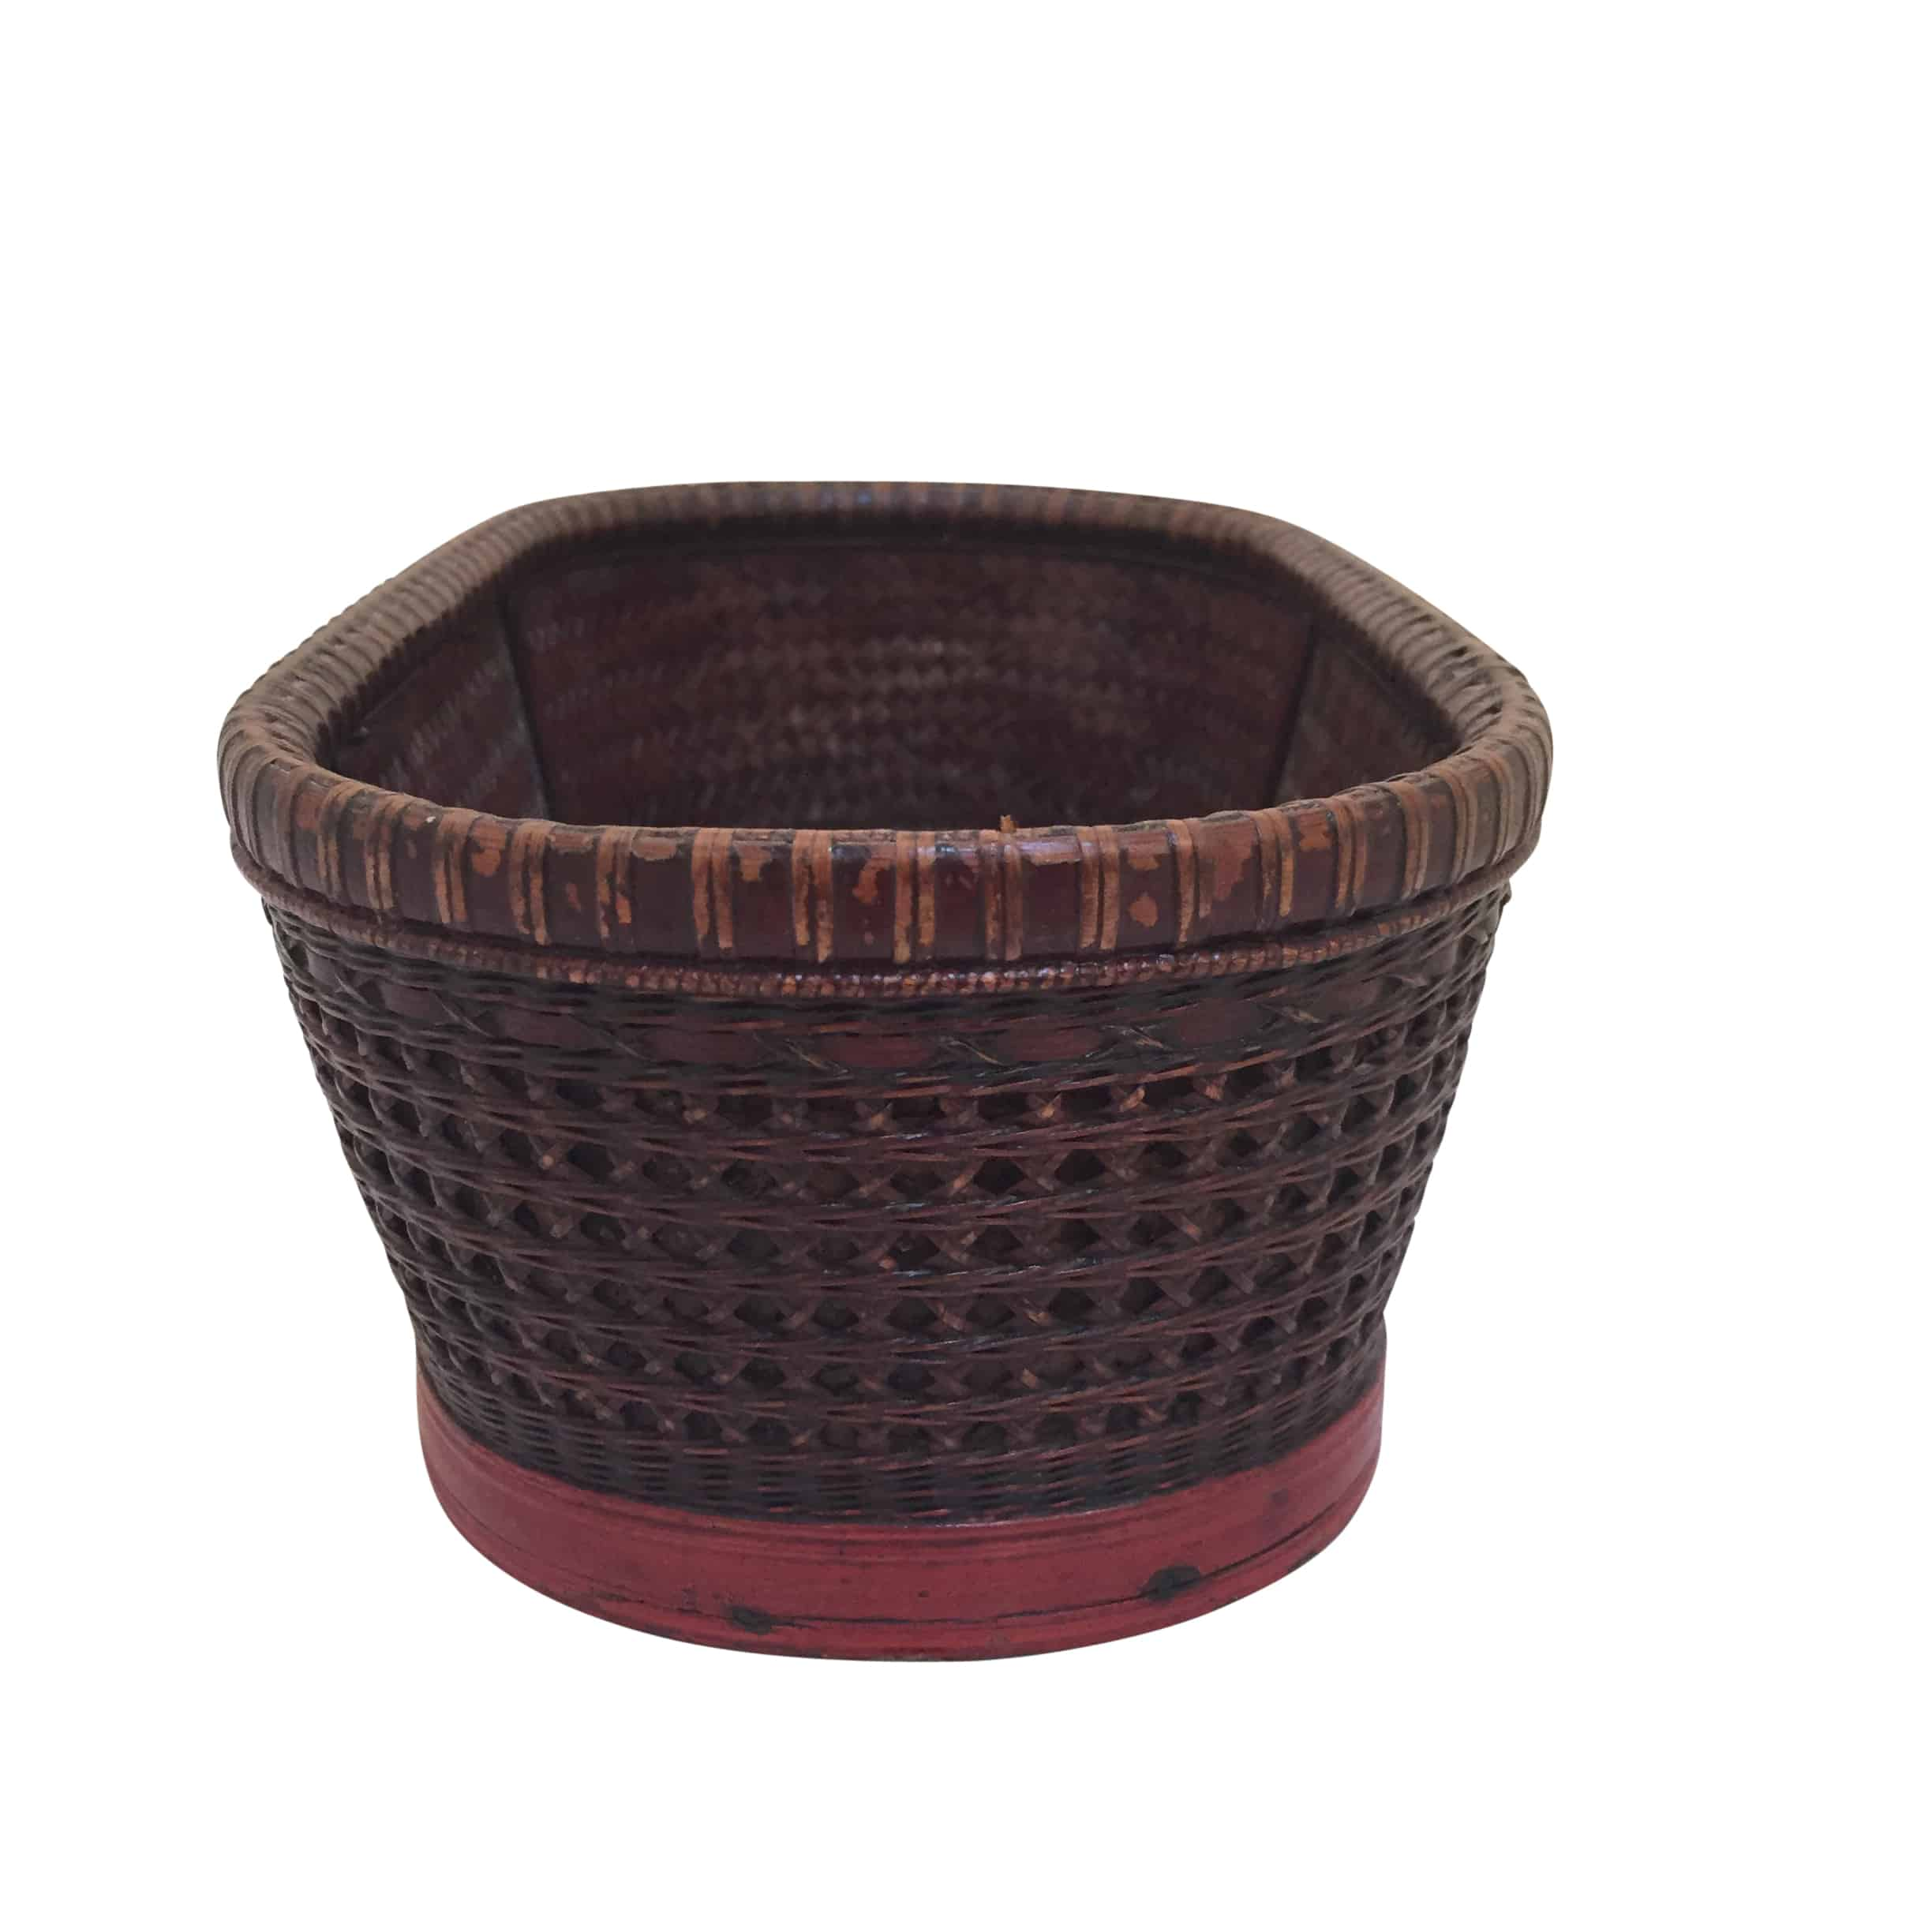 Woven Baskets Antique Woven Basket Cabana Home